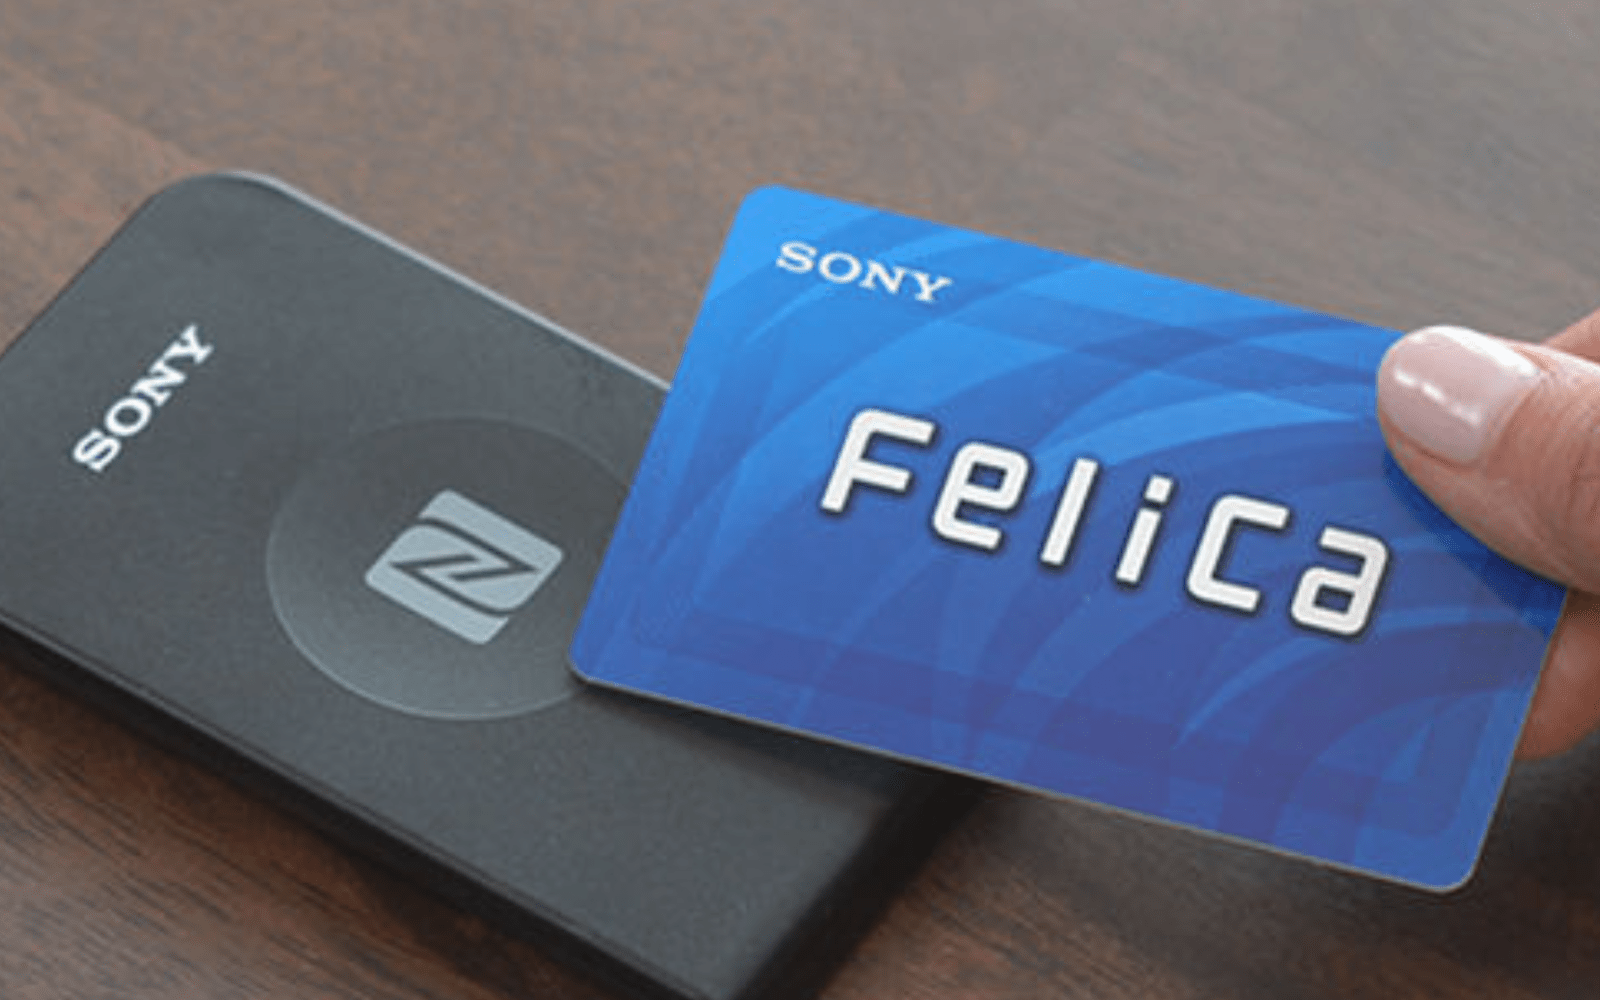 Report: Apple planning iPhone model for Japan with support for FeliCa mobile payment standard